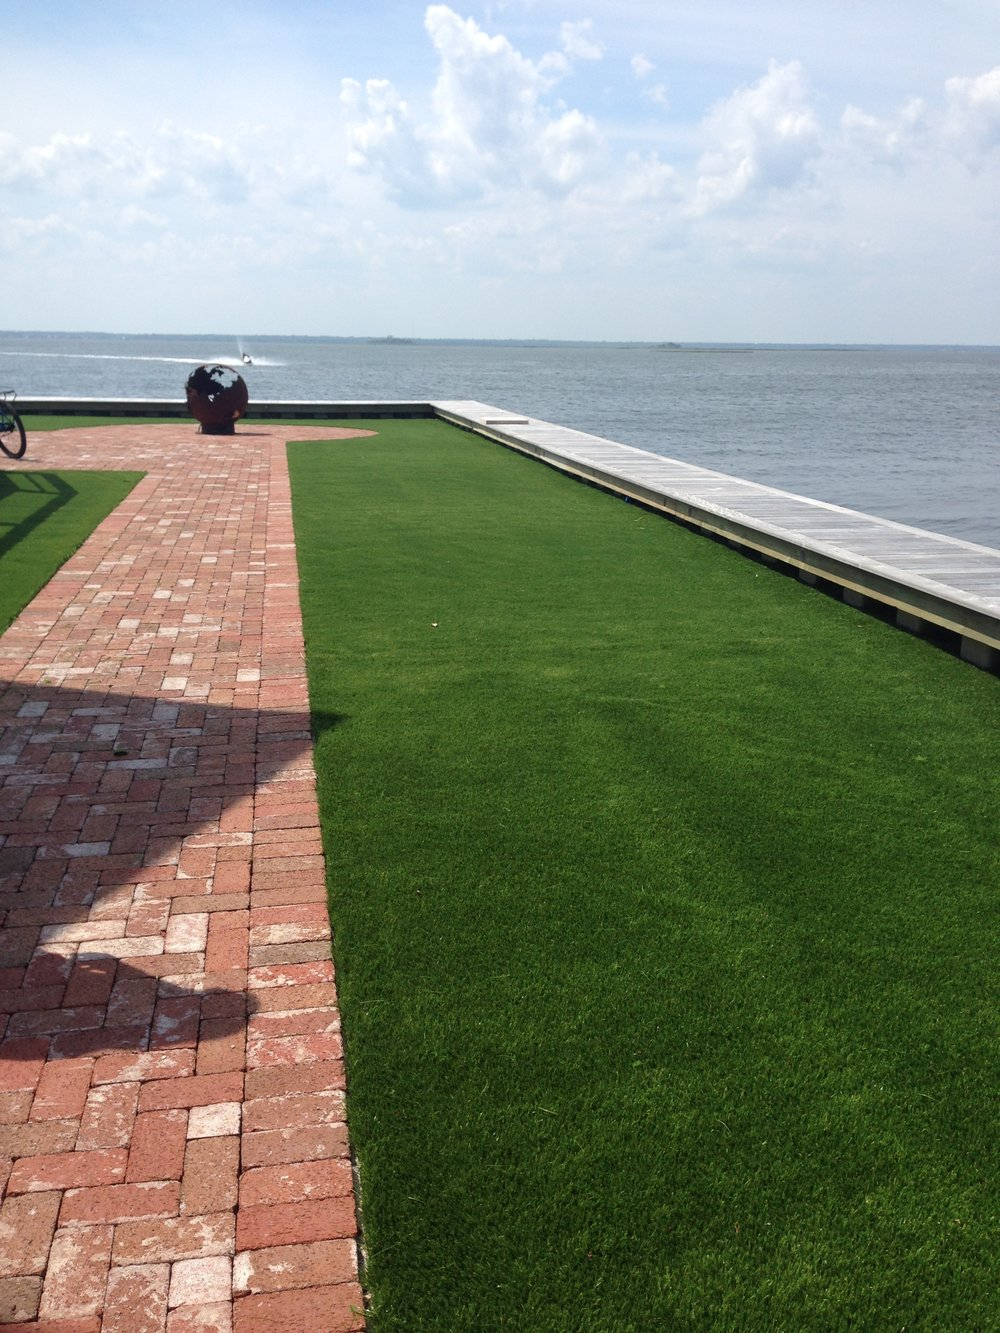 Best landscape paving stones supply in Brick, NJ